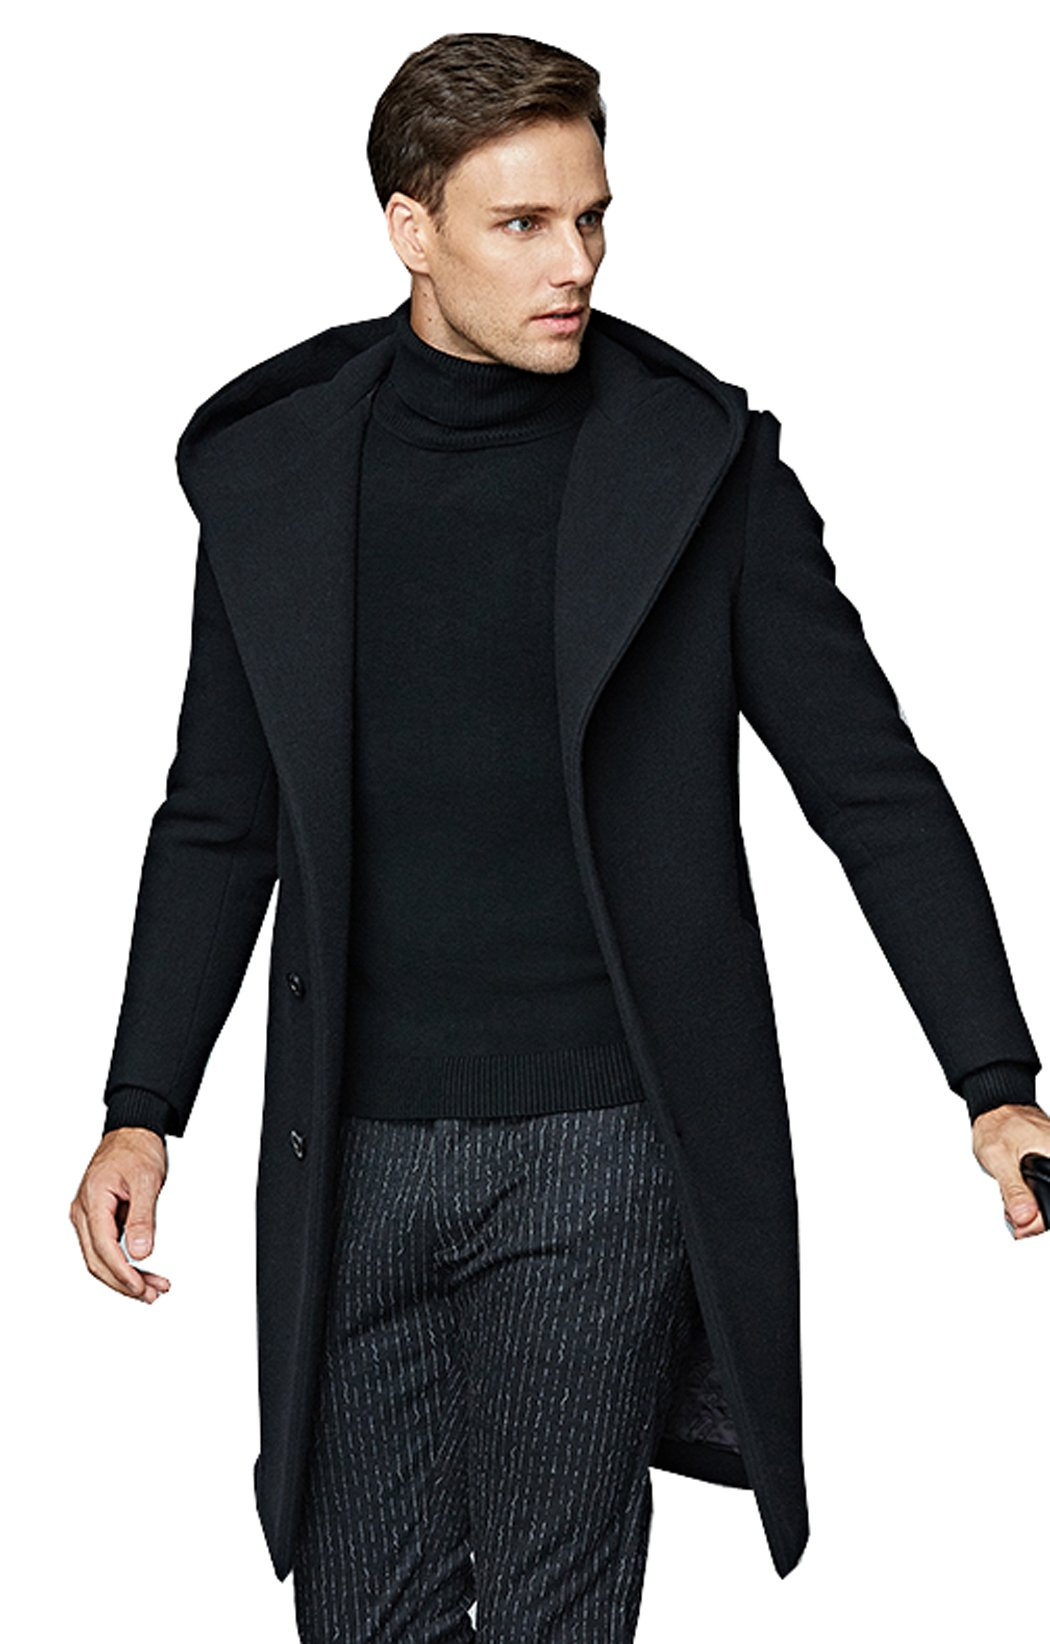 UNbox Mens Winter Slim Fit Long Woolen Trench Coat Business Down Jacket Black M by UNbox